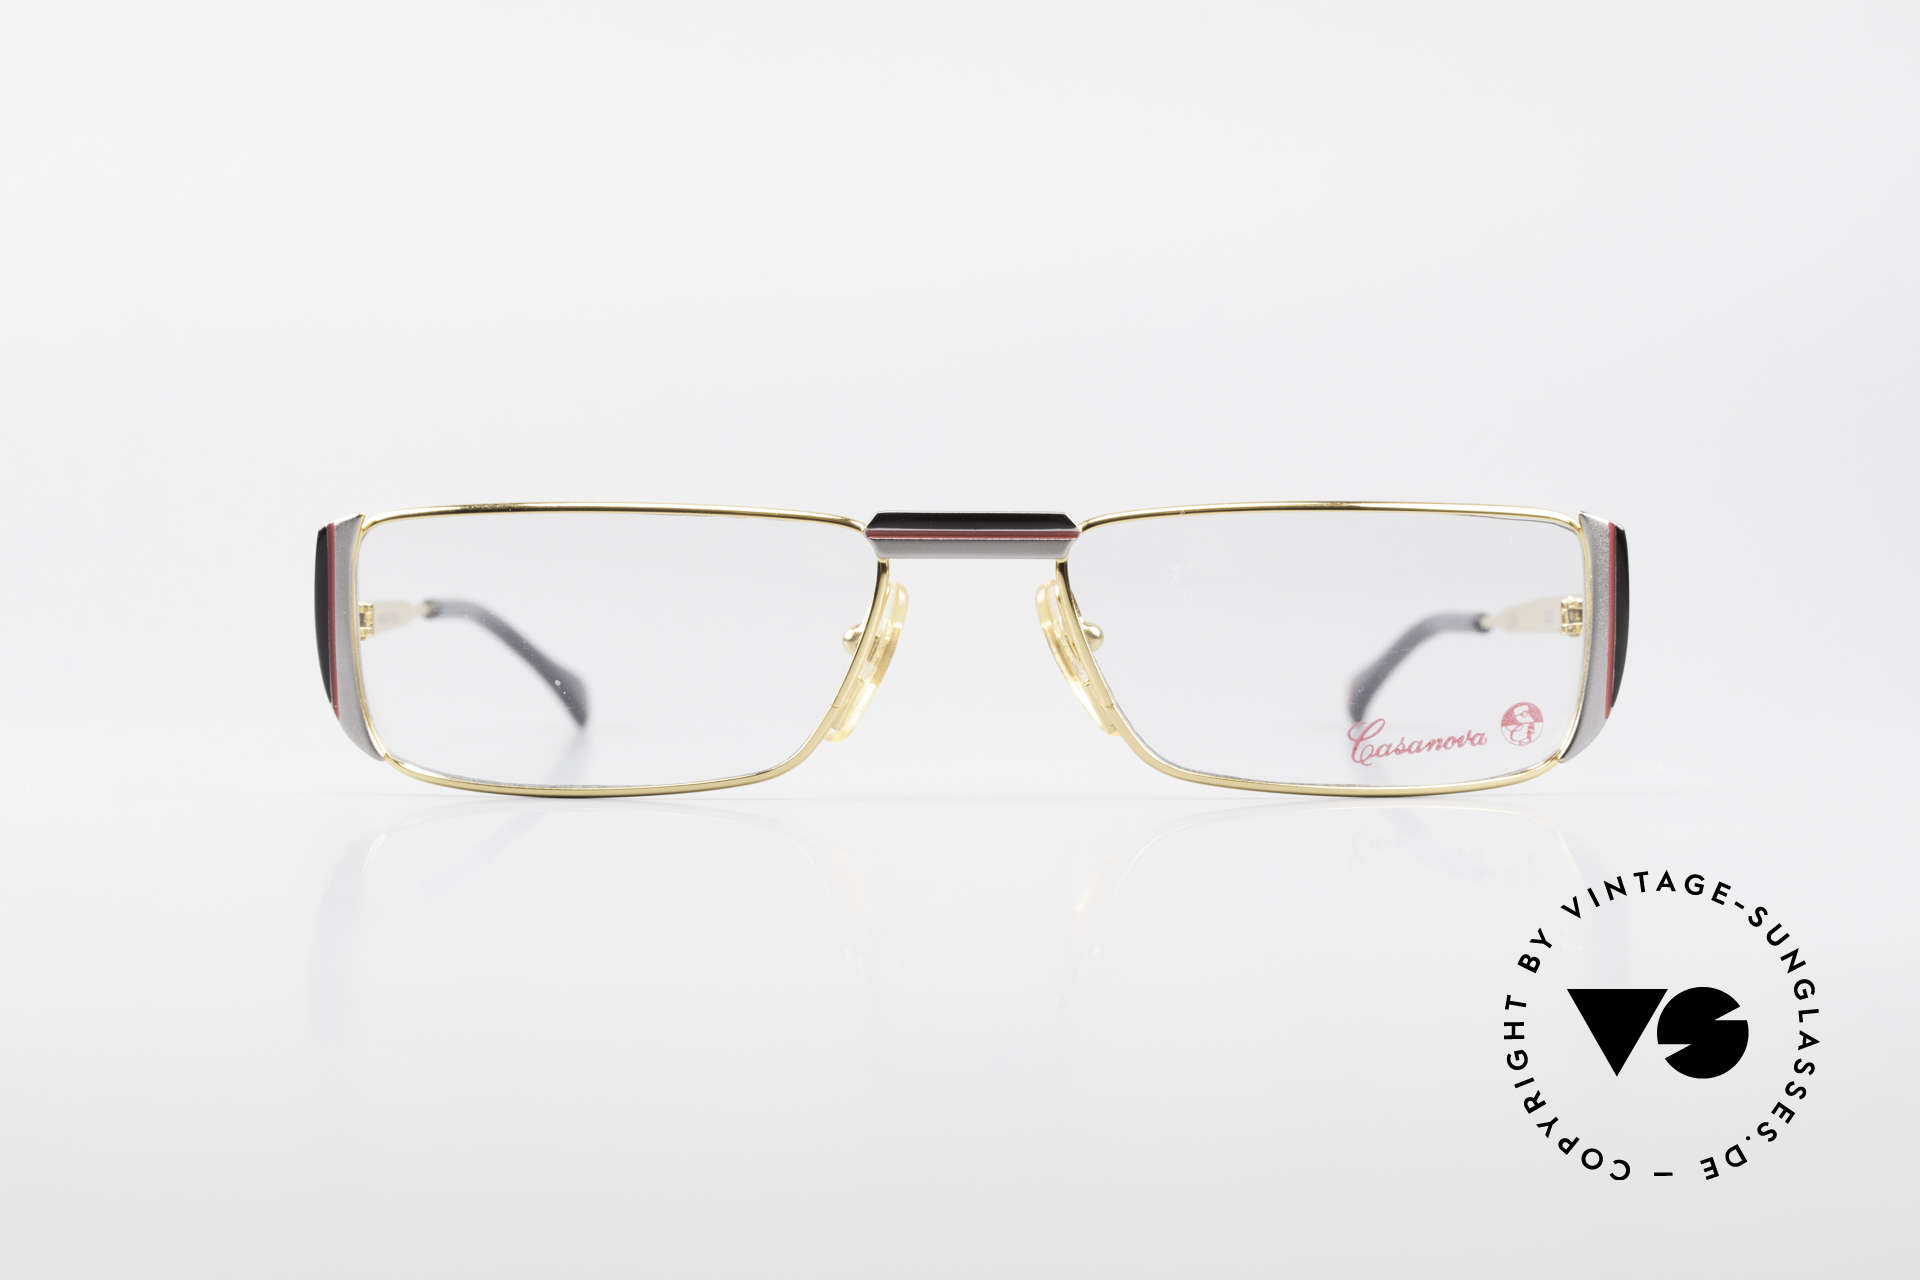 Casanova NM3 Square Reading Eyeglasses 80s, gold-plated frame (a matter of course, at that time), Made for Men and Women